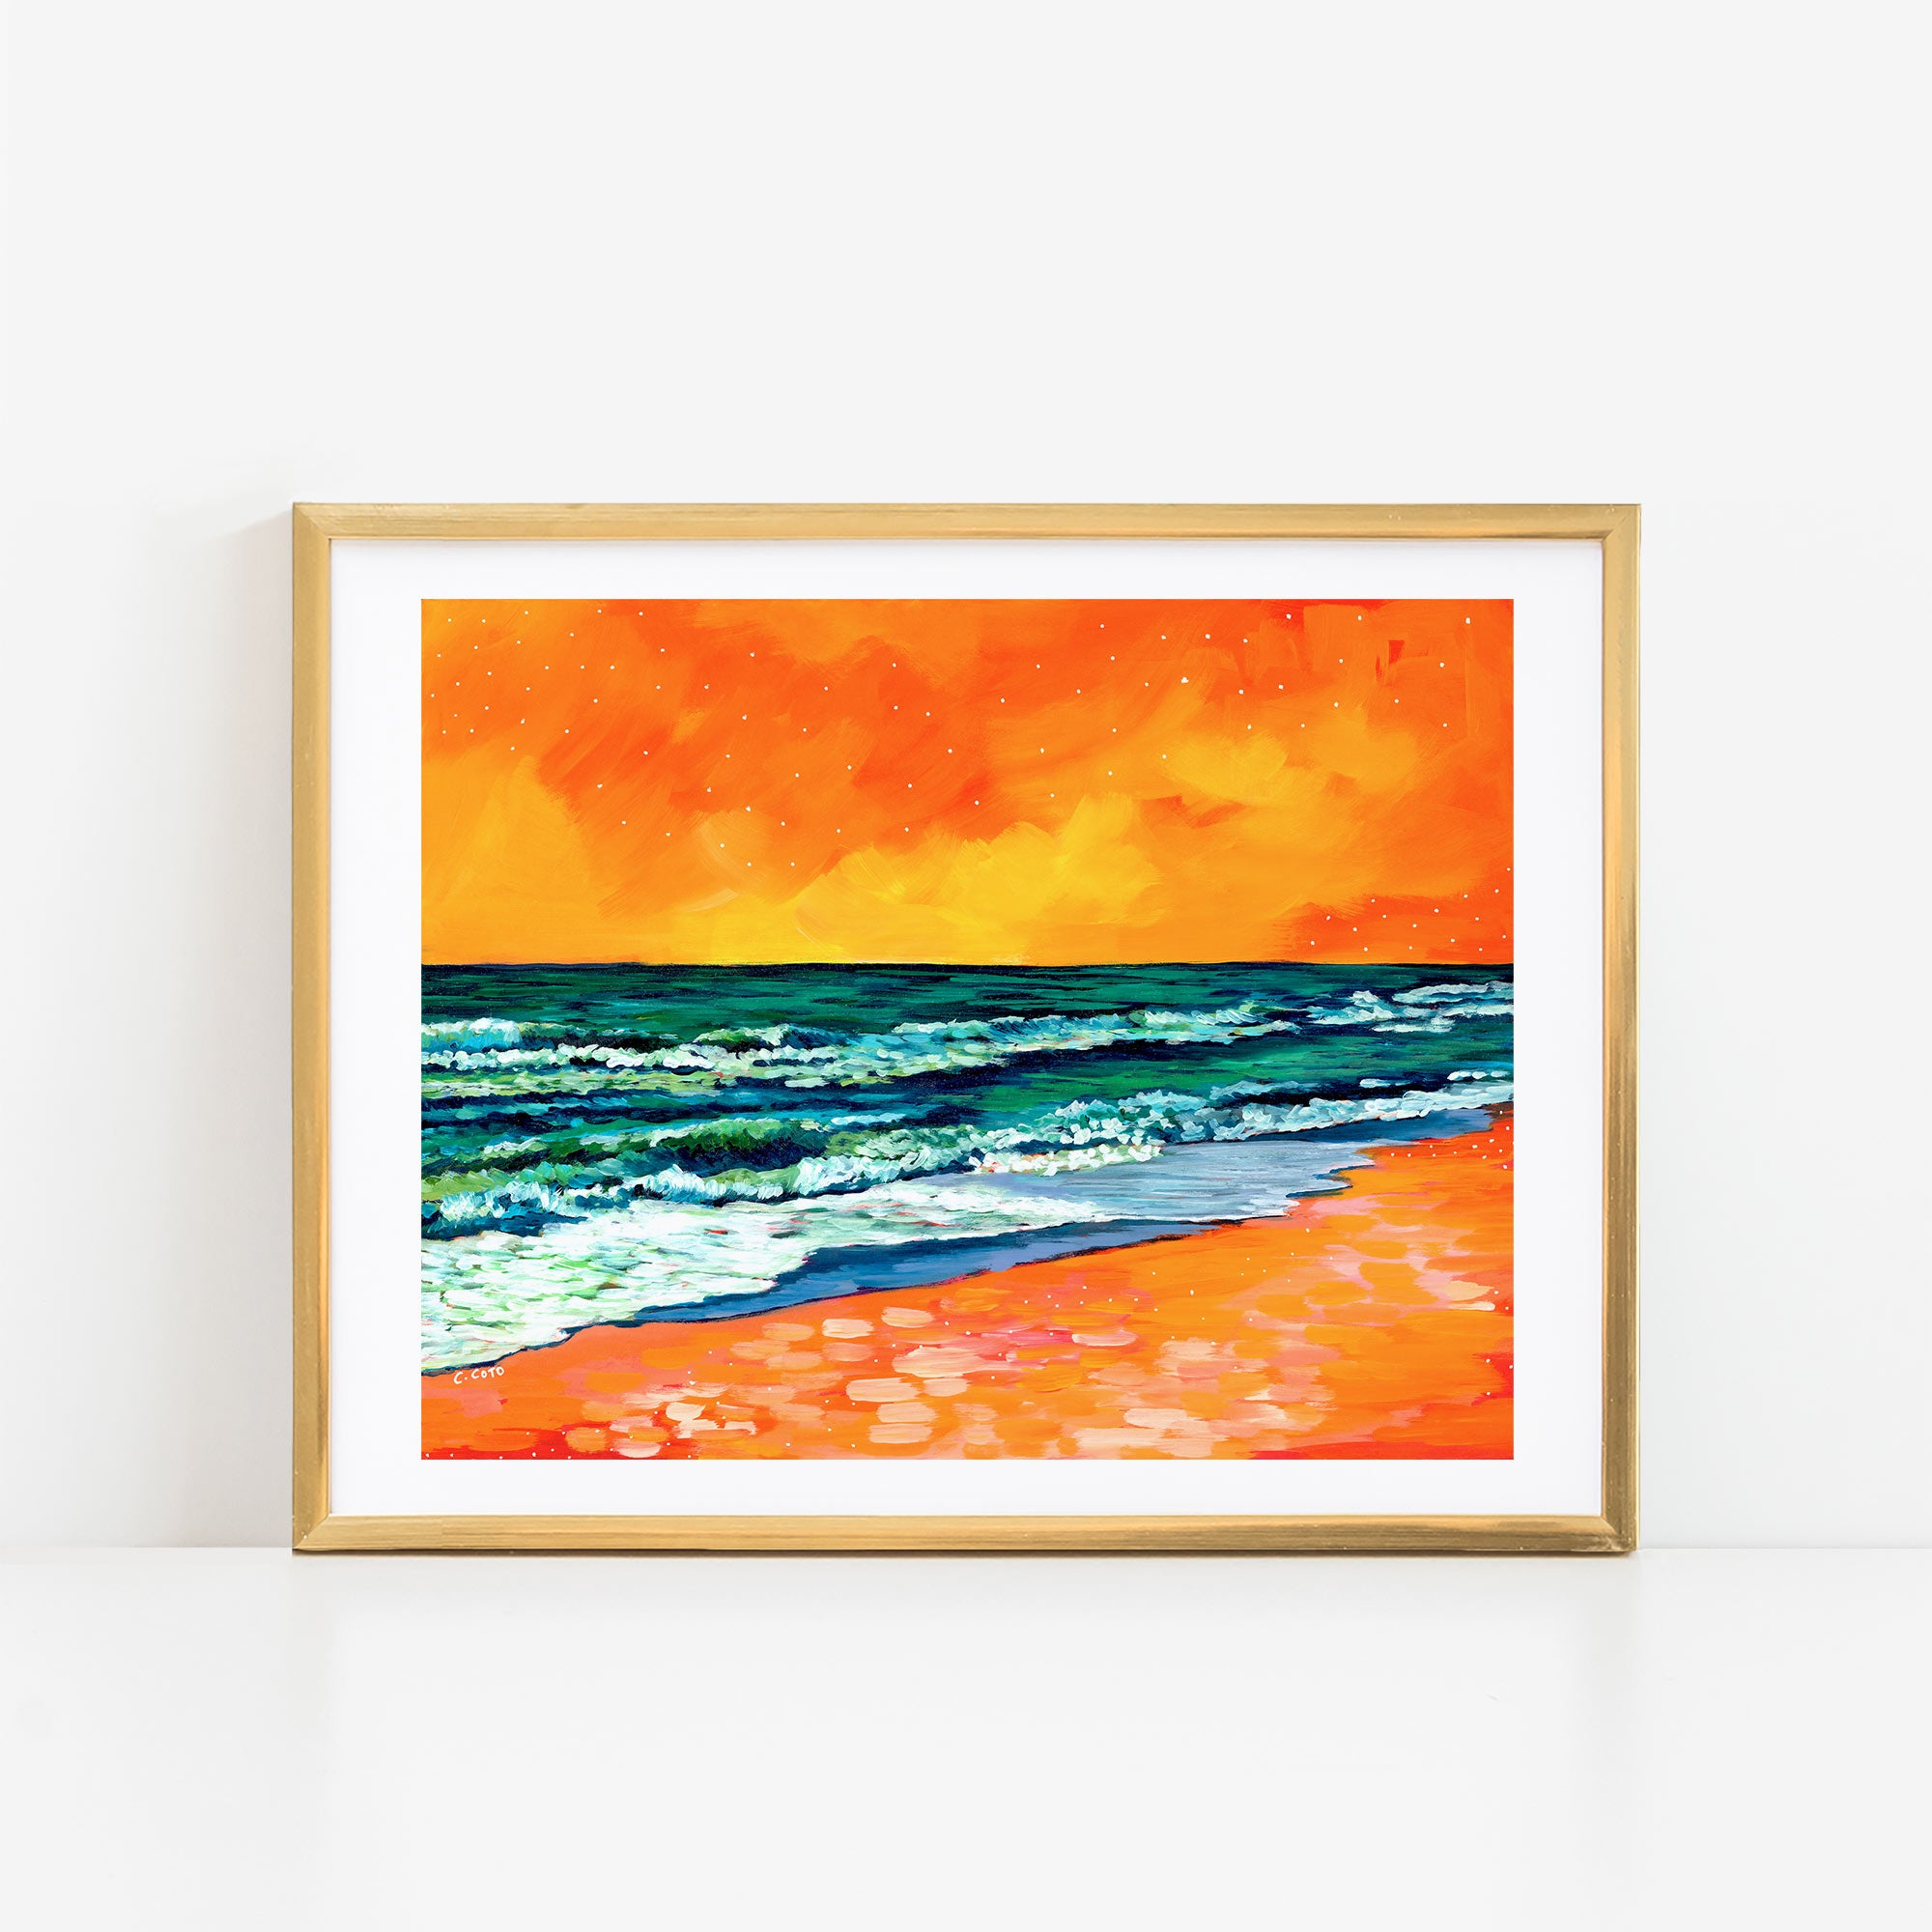 SPECIAL EDITION PRINT - Hot Summer Day